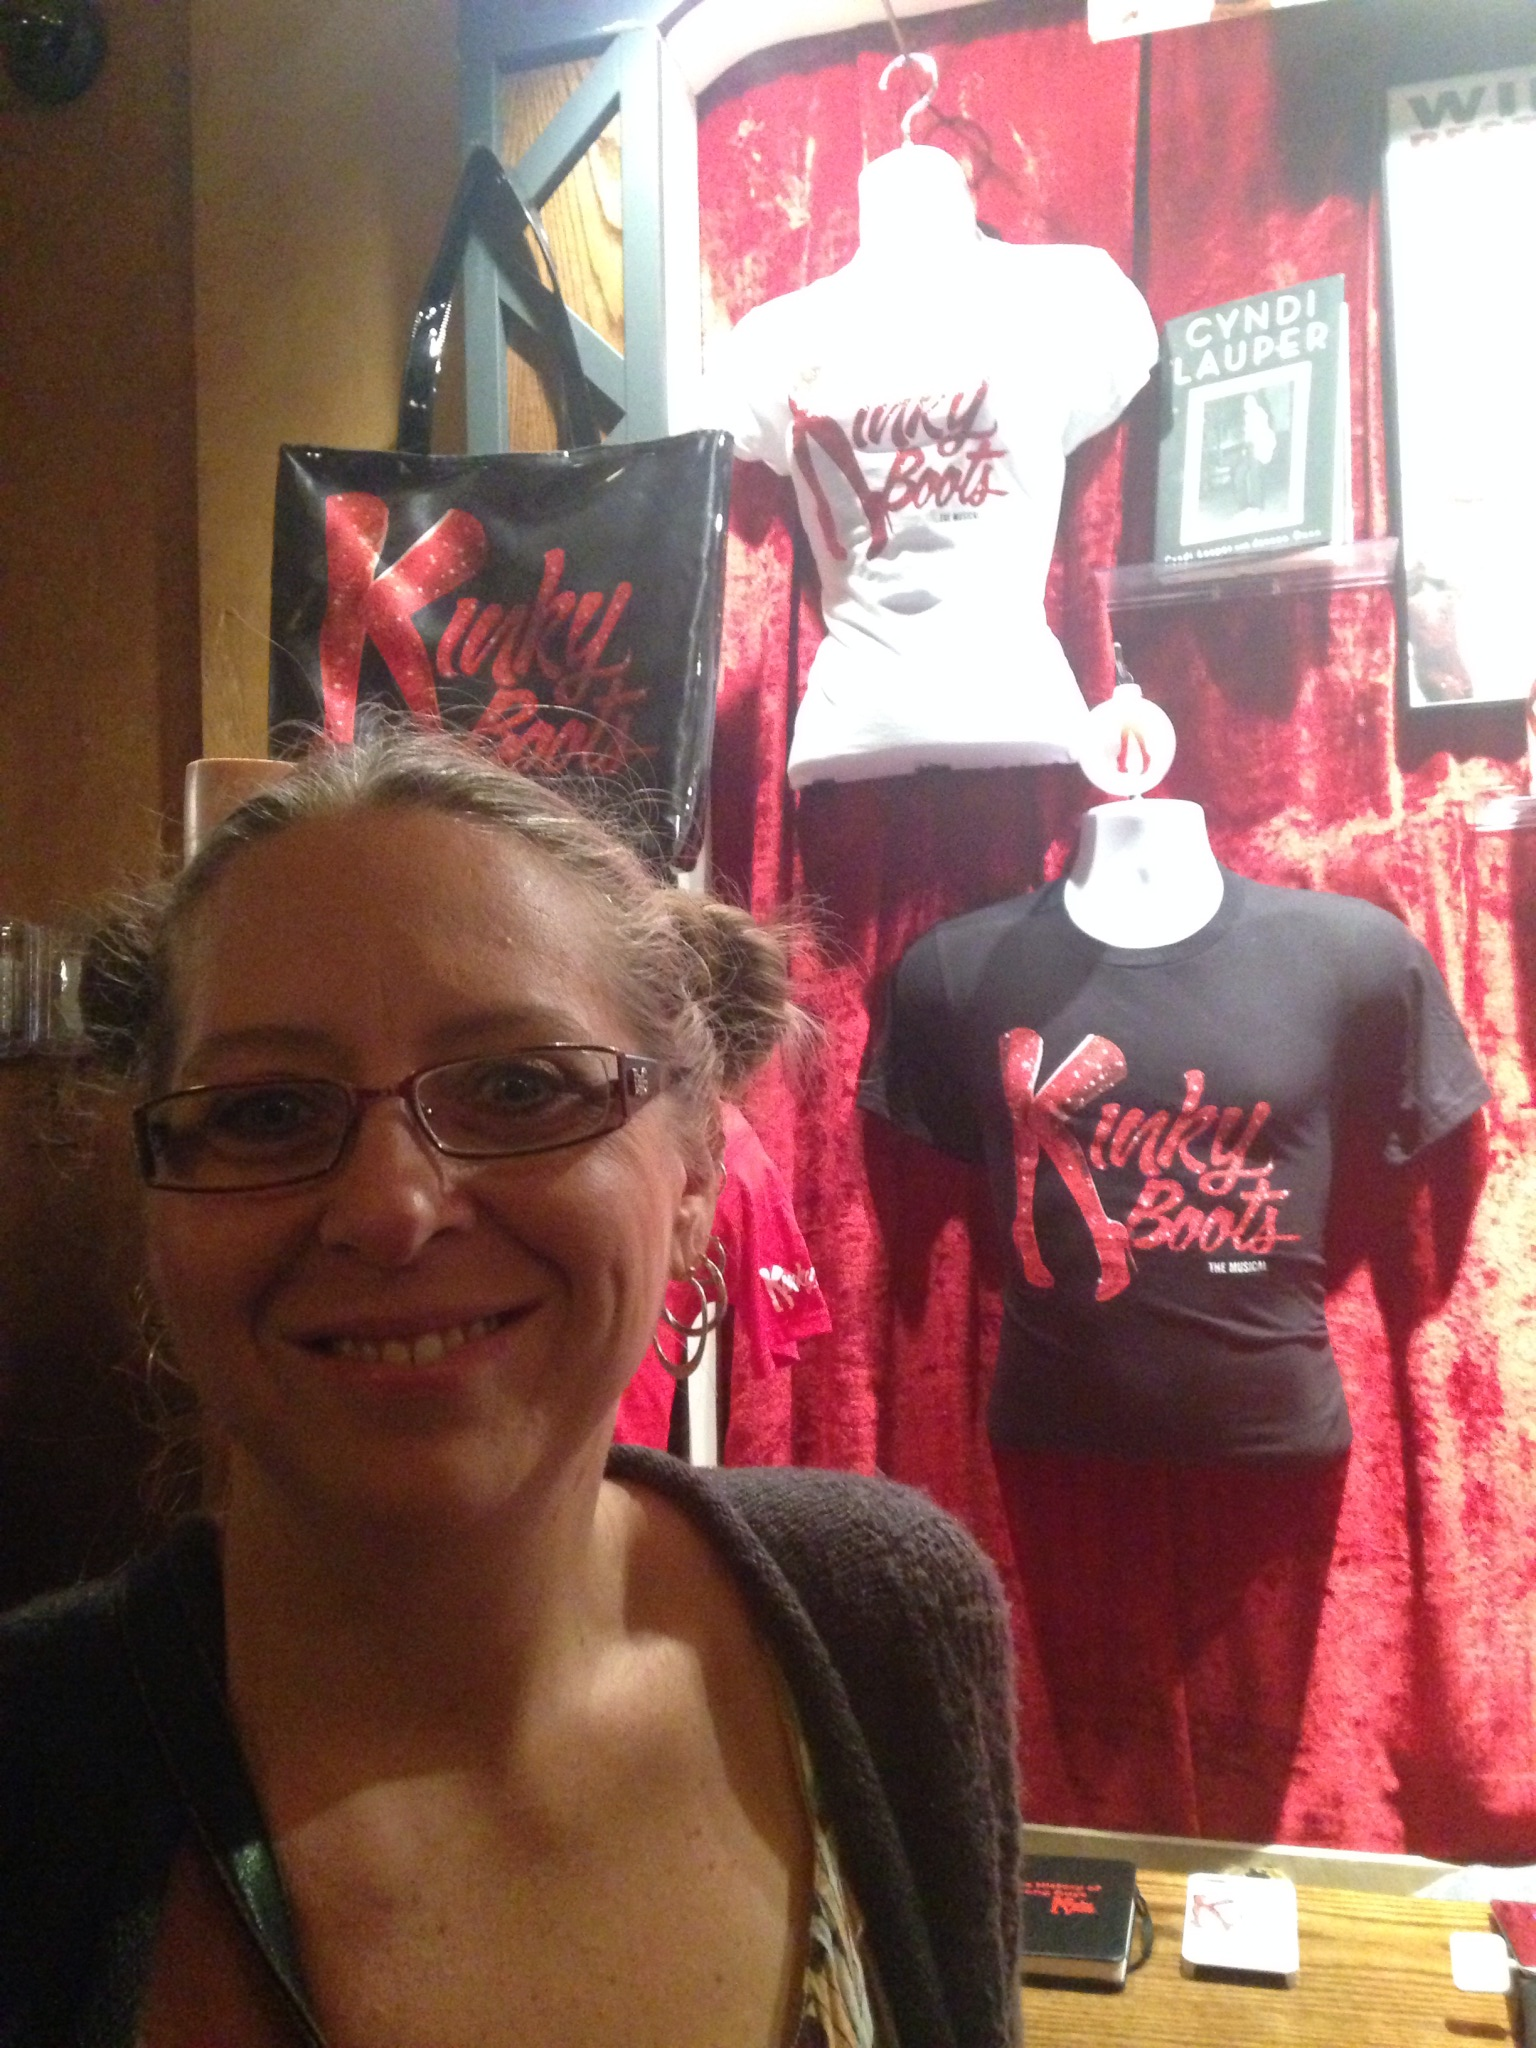 In NYC at Kinky Boots